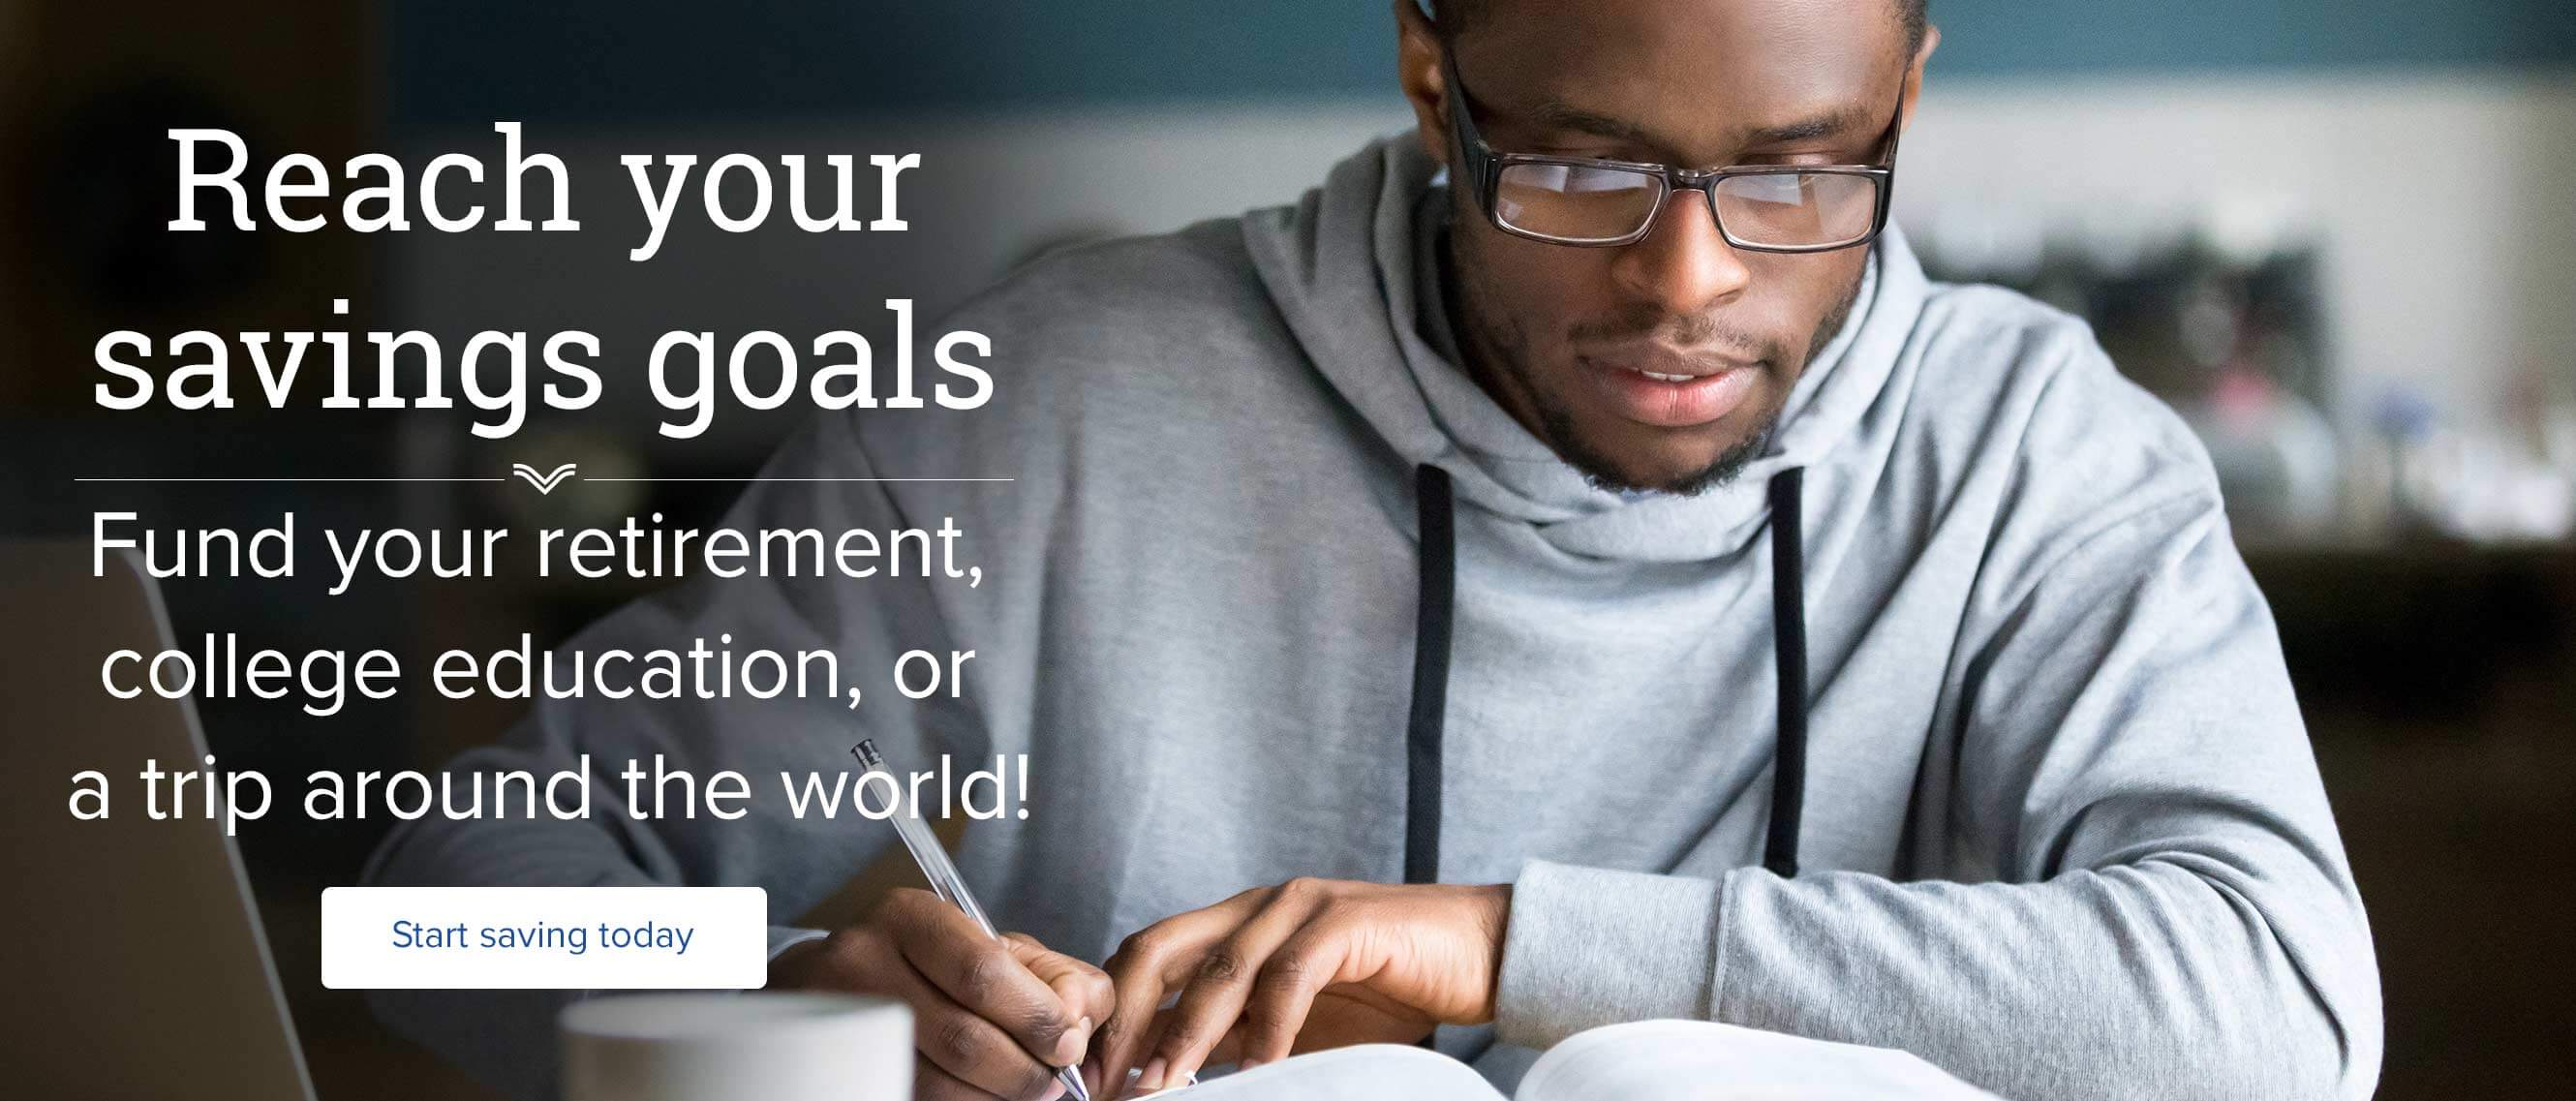 Reach your savings goals. Fund your retirement,  college education, or  a trip around the world! Start saving today